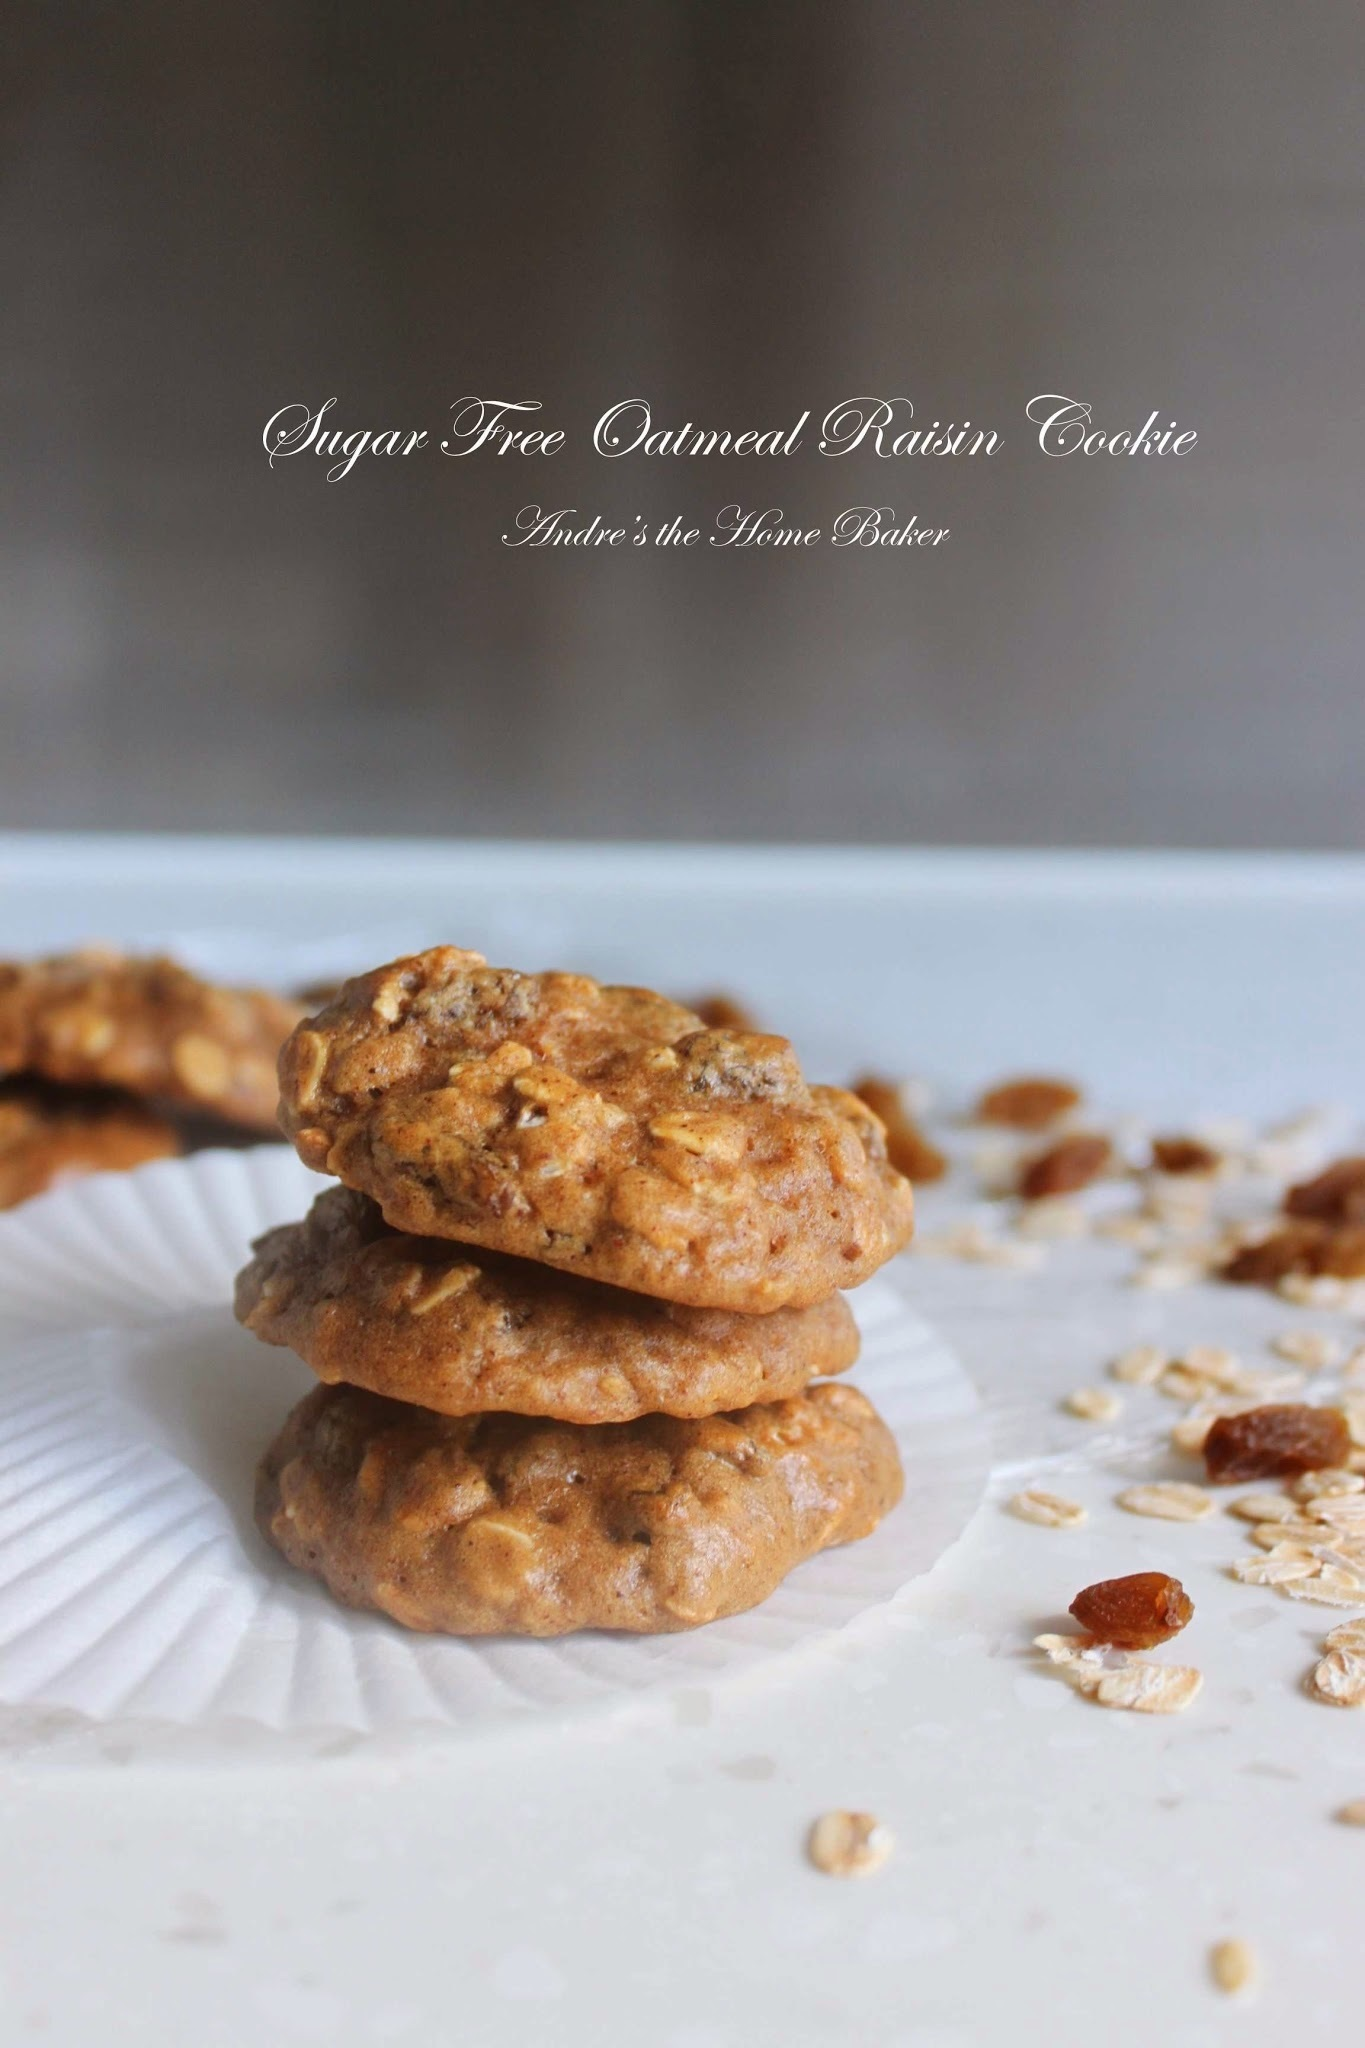 ♥ Sugar Free Oatmeal Raisin Cookies ♥